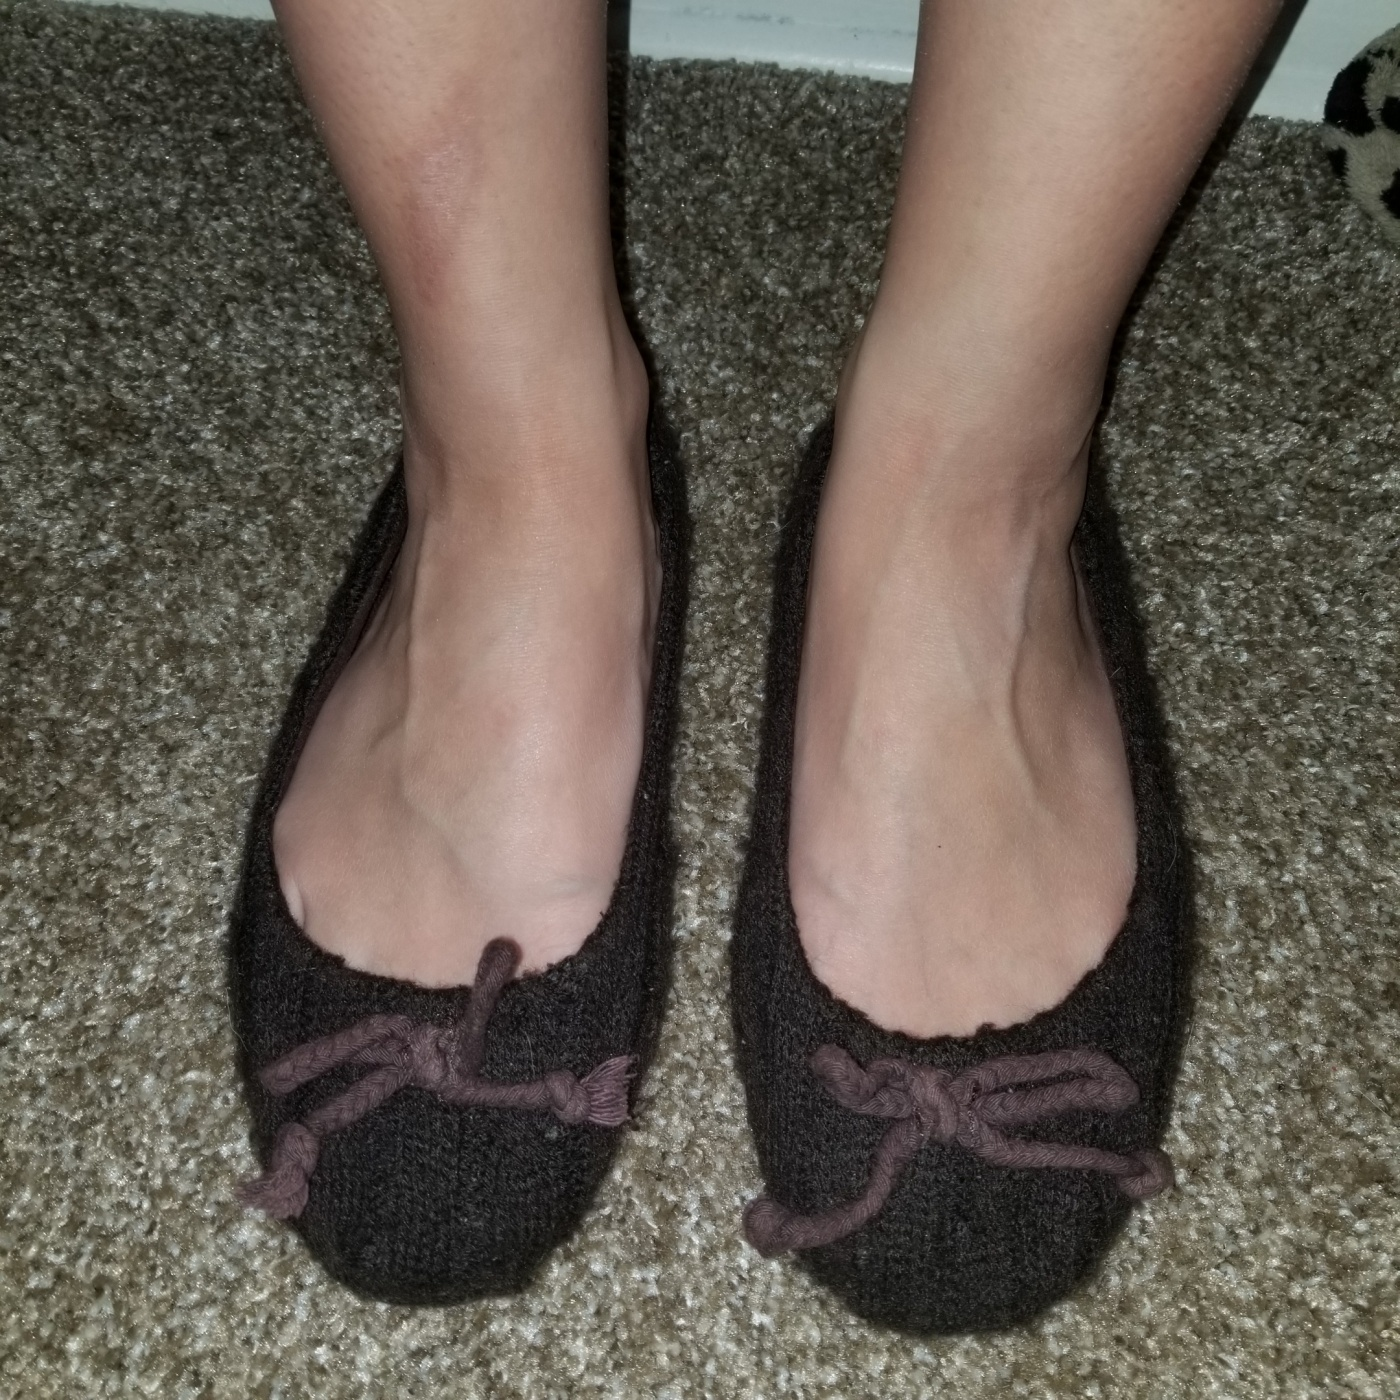 Delectable slippers - 1